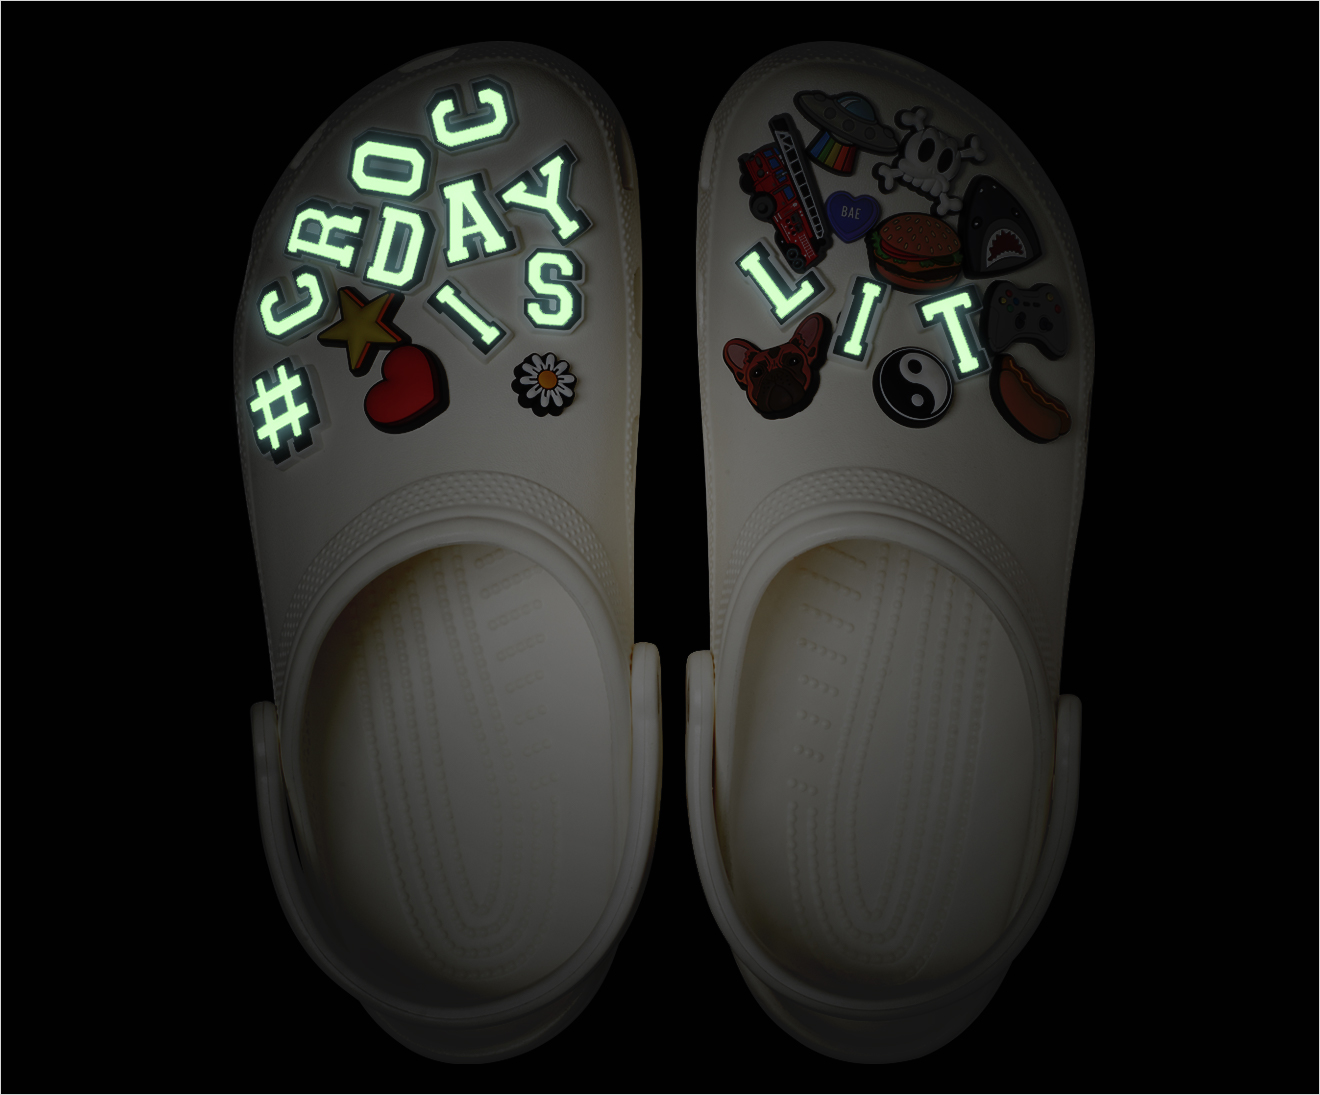 Crocs launch glow-in-the-dark shoes for Croc Day